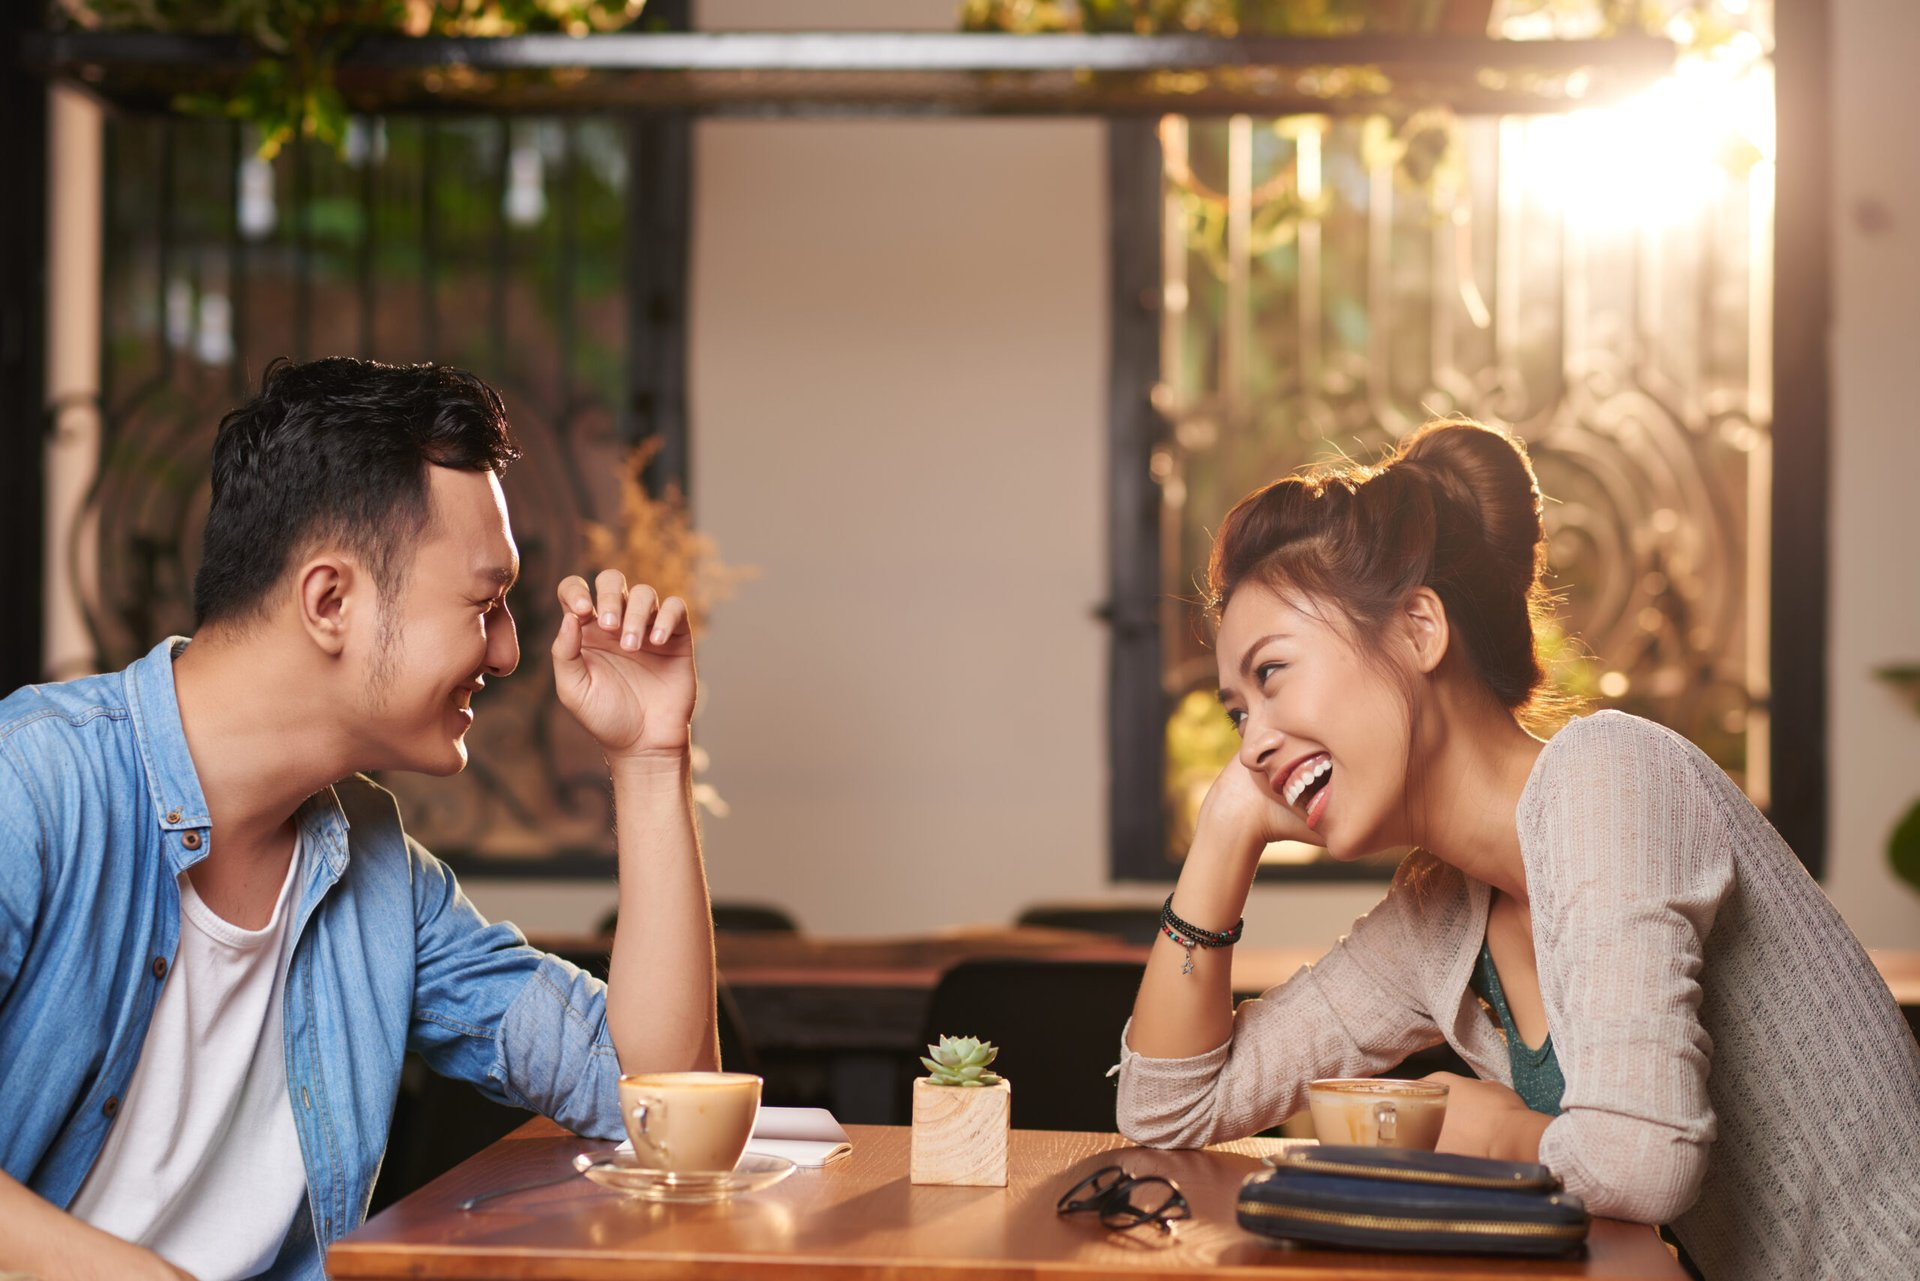 10 Affordable Date Night Ideas To Try